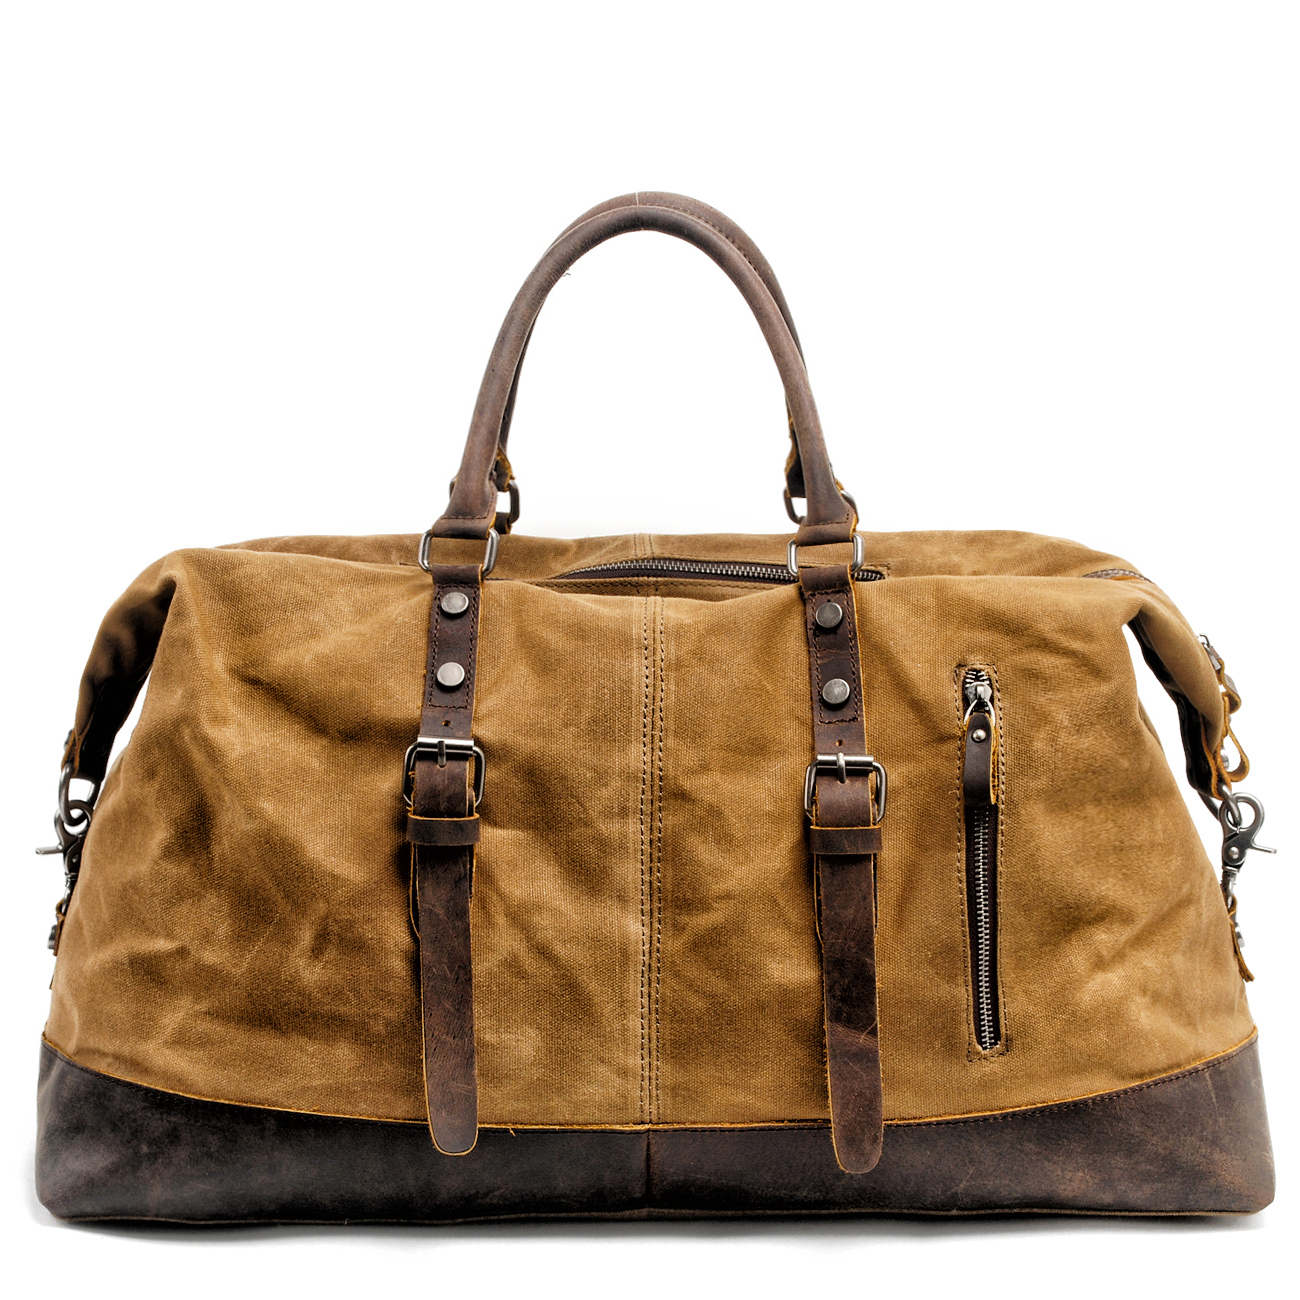 MUCHUAN Men Travel Bags M Hand Luggage Bags Canvas Leather Travel Duffel Bags Shoulder Bags Large Capacity Weekend Overnight-in Travel Bags from Luggage & Bags    1